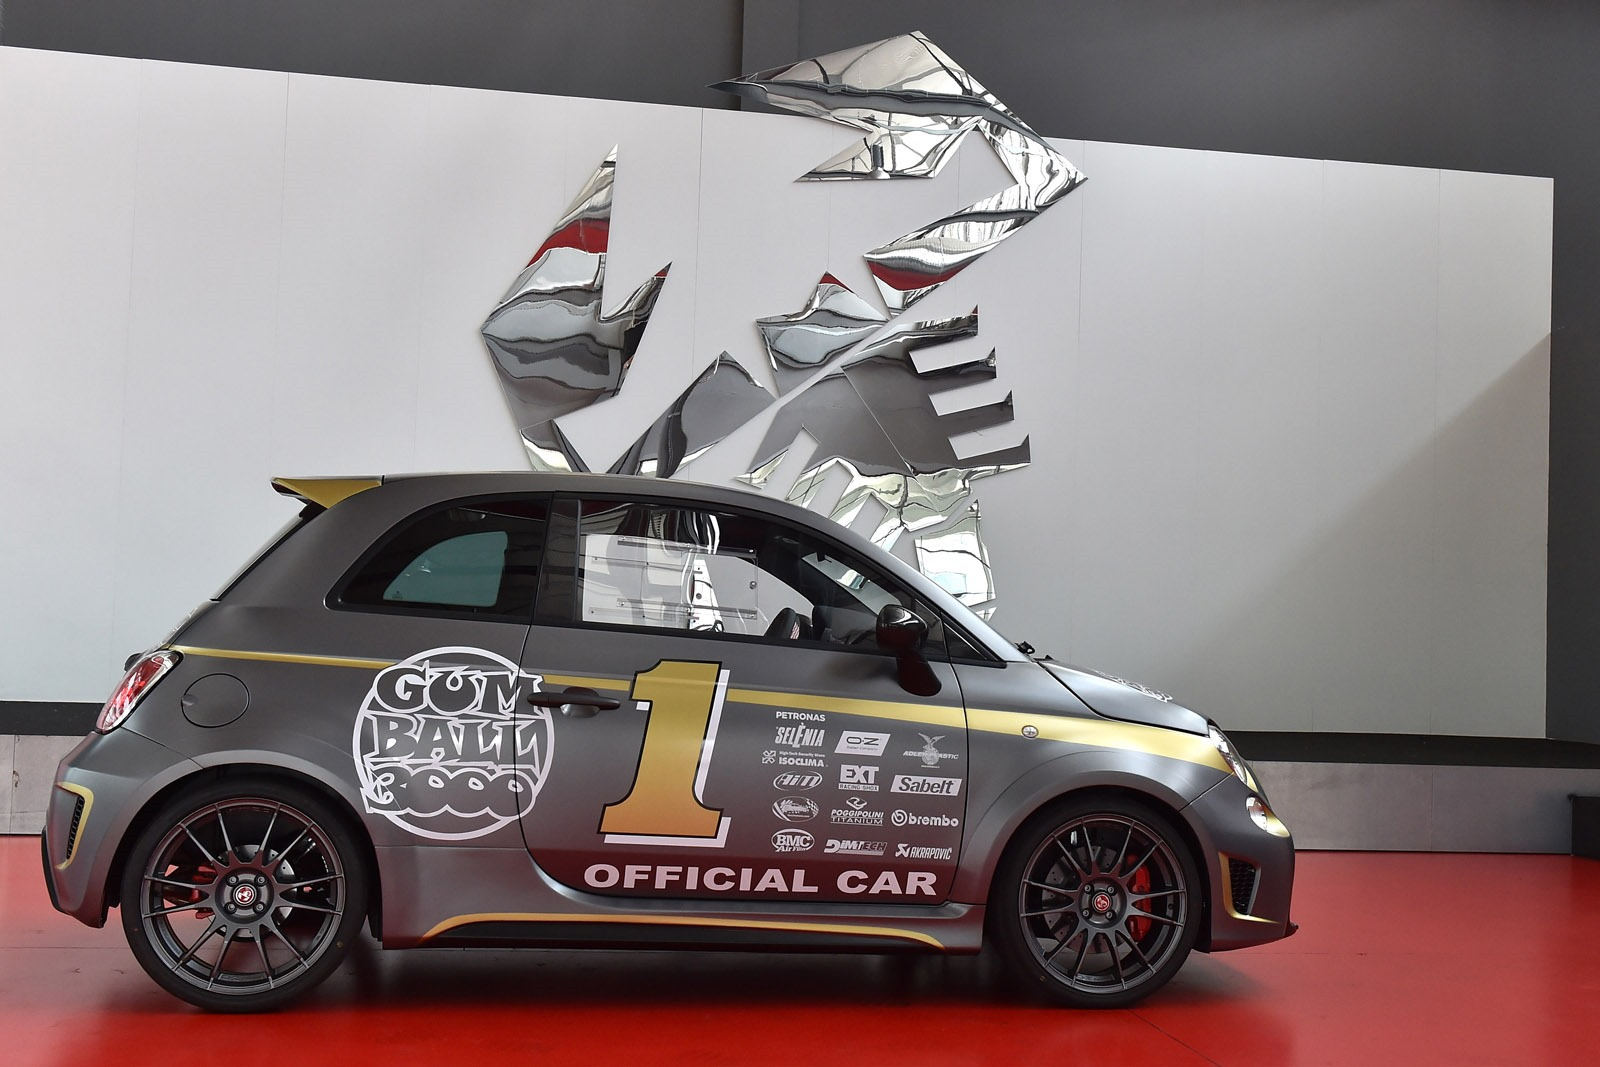 [Fiat] 500 Abarth - Page 13 Abarth-695-Biposto-Gumball-official-car-2%25255B4%25255D